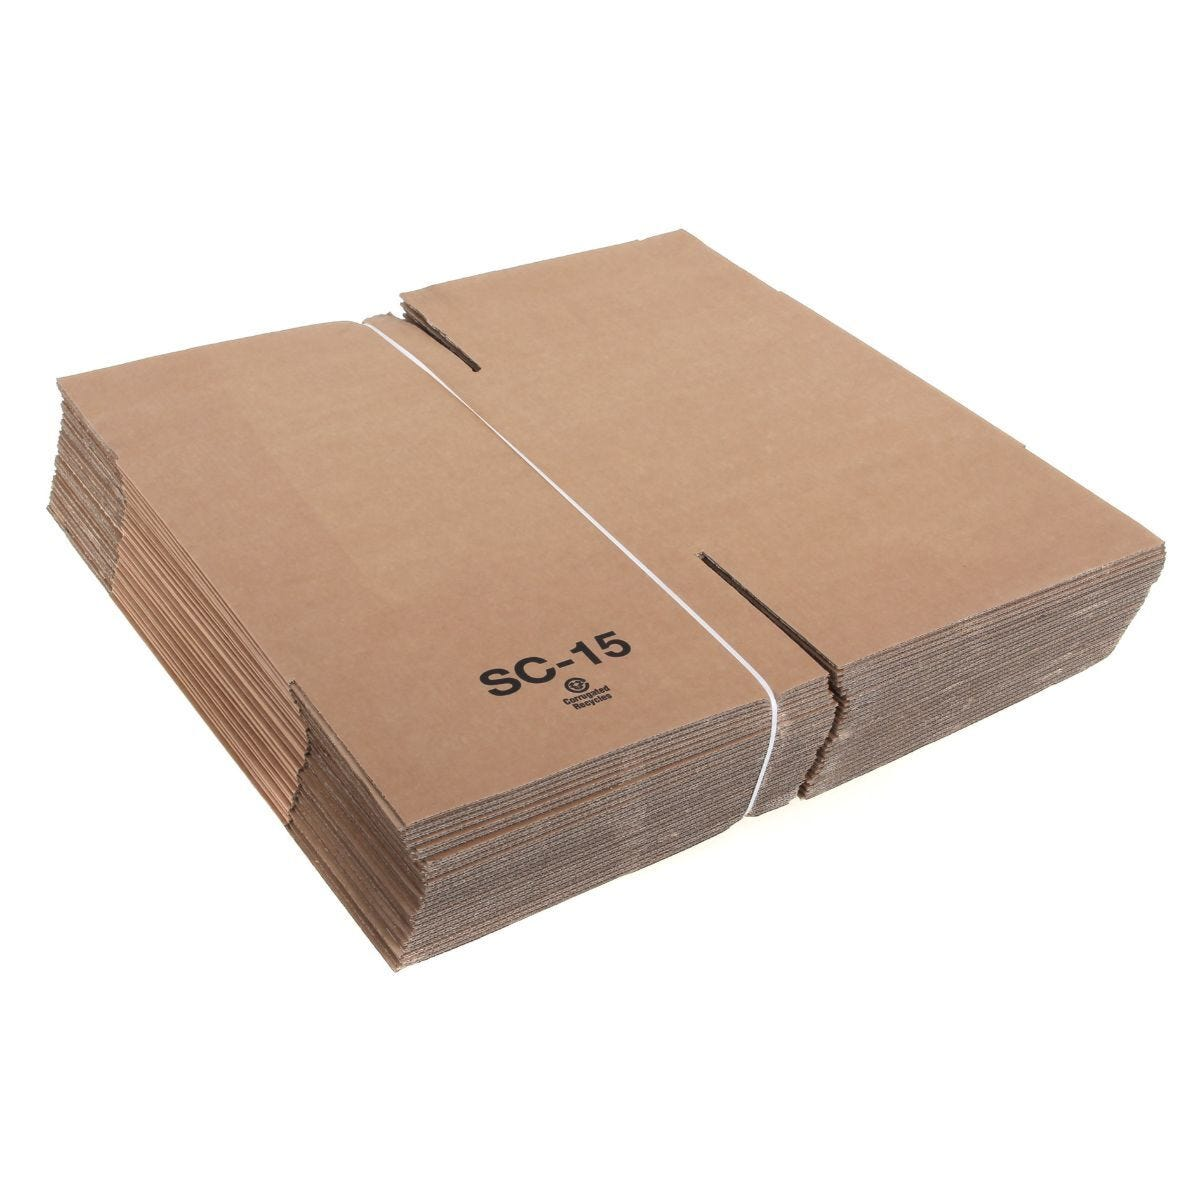 Posting Single Walled Carton Box 381x381x381mm Style 0201 Pack of 25